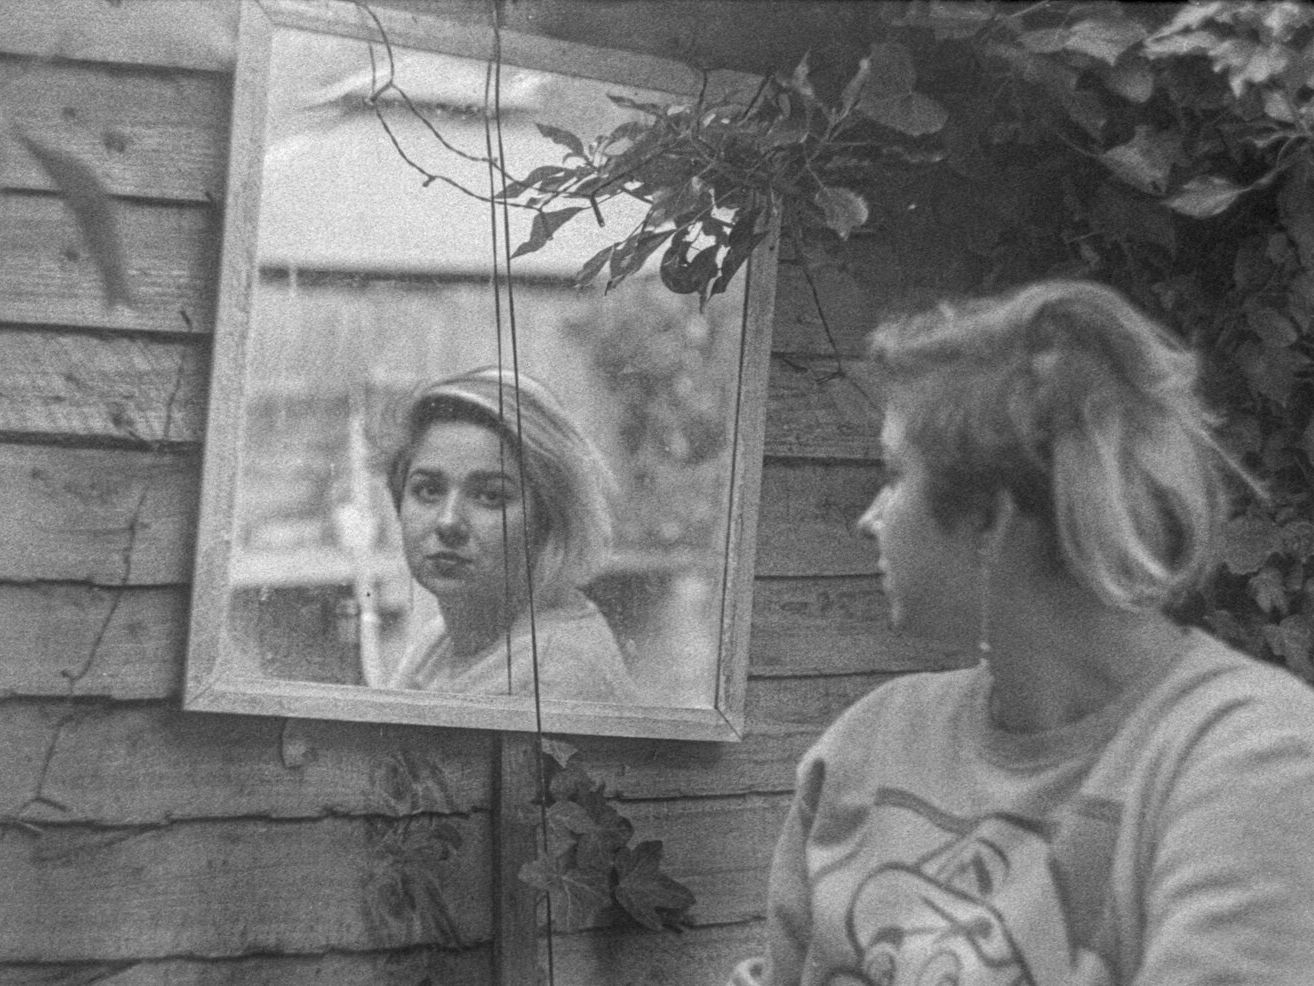 A woman looks at a mirror over her shoulder.